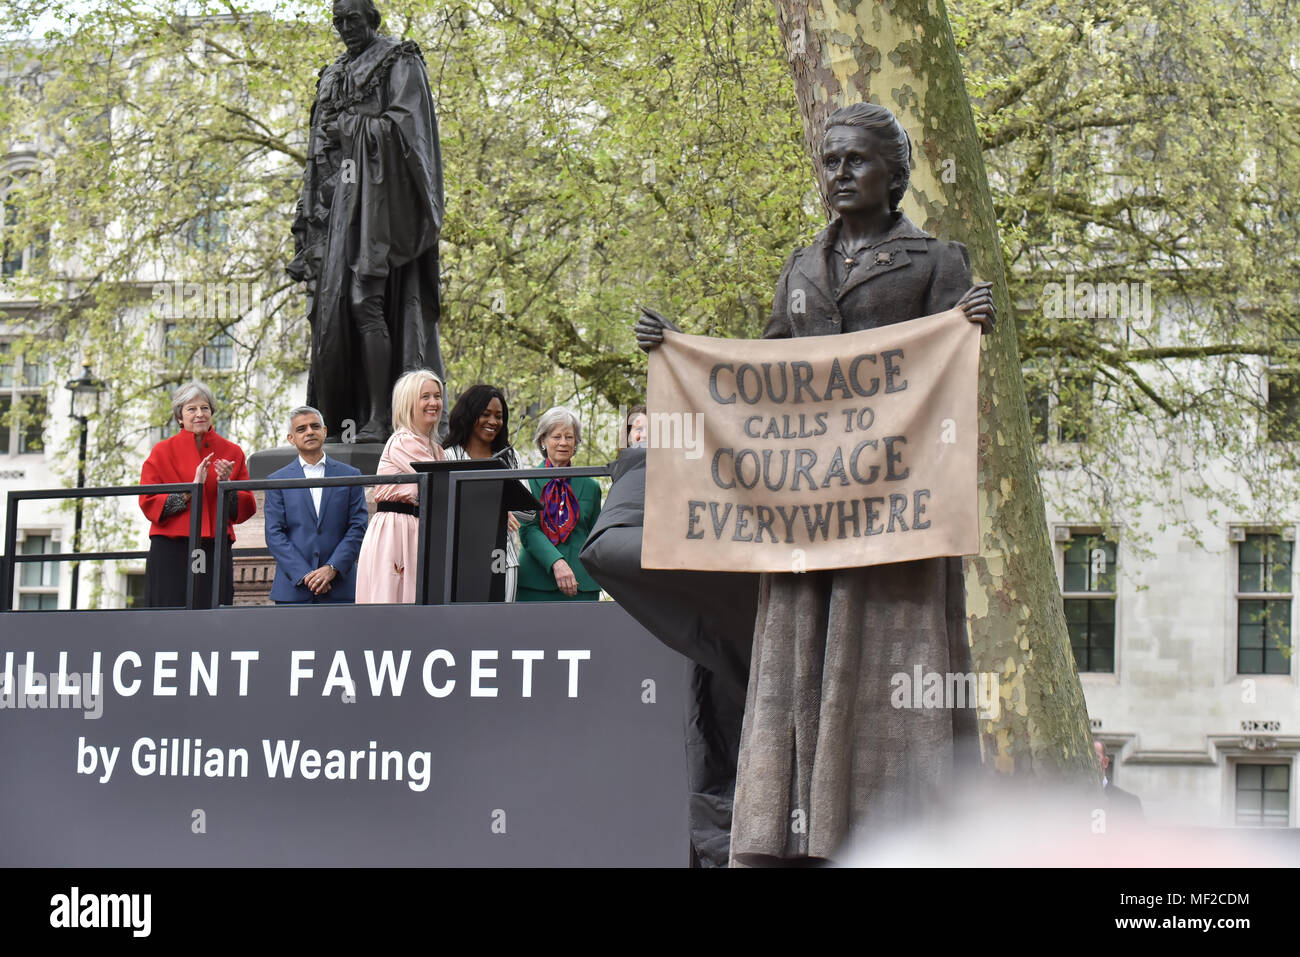 Parliament Square, London, UK. 24th April 2018. The first statue of a woman in Parliament Square of the suffragist Millicent Fawcett by artist Gillian Wearing is unveiled. Credit: Matthew Chattle/Alamy Live News - Stock Image